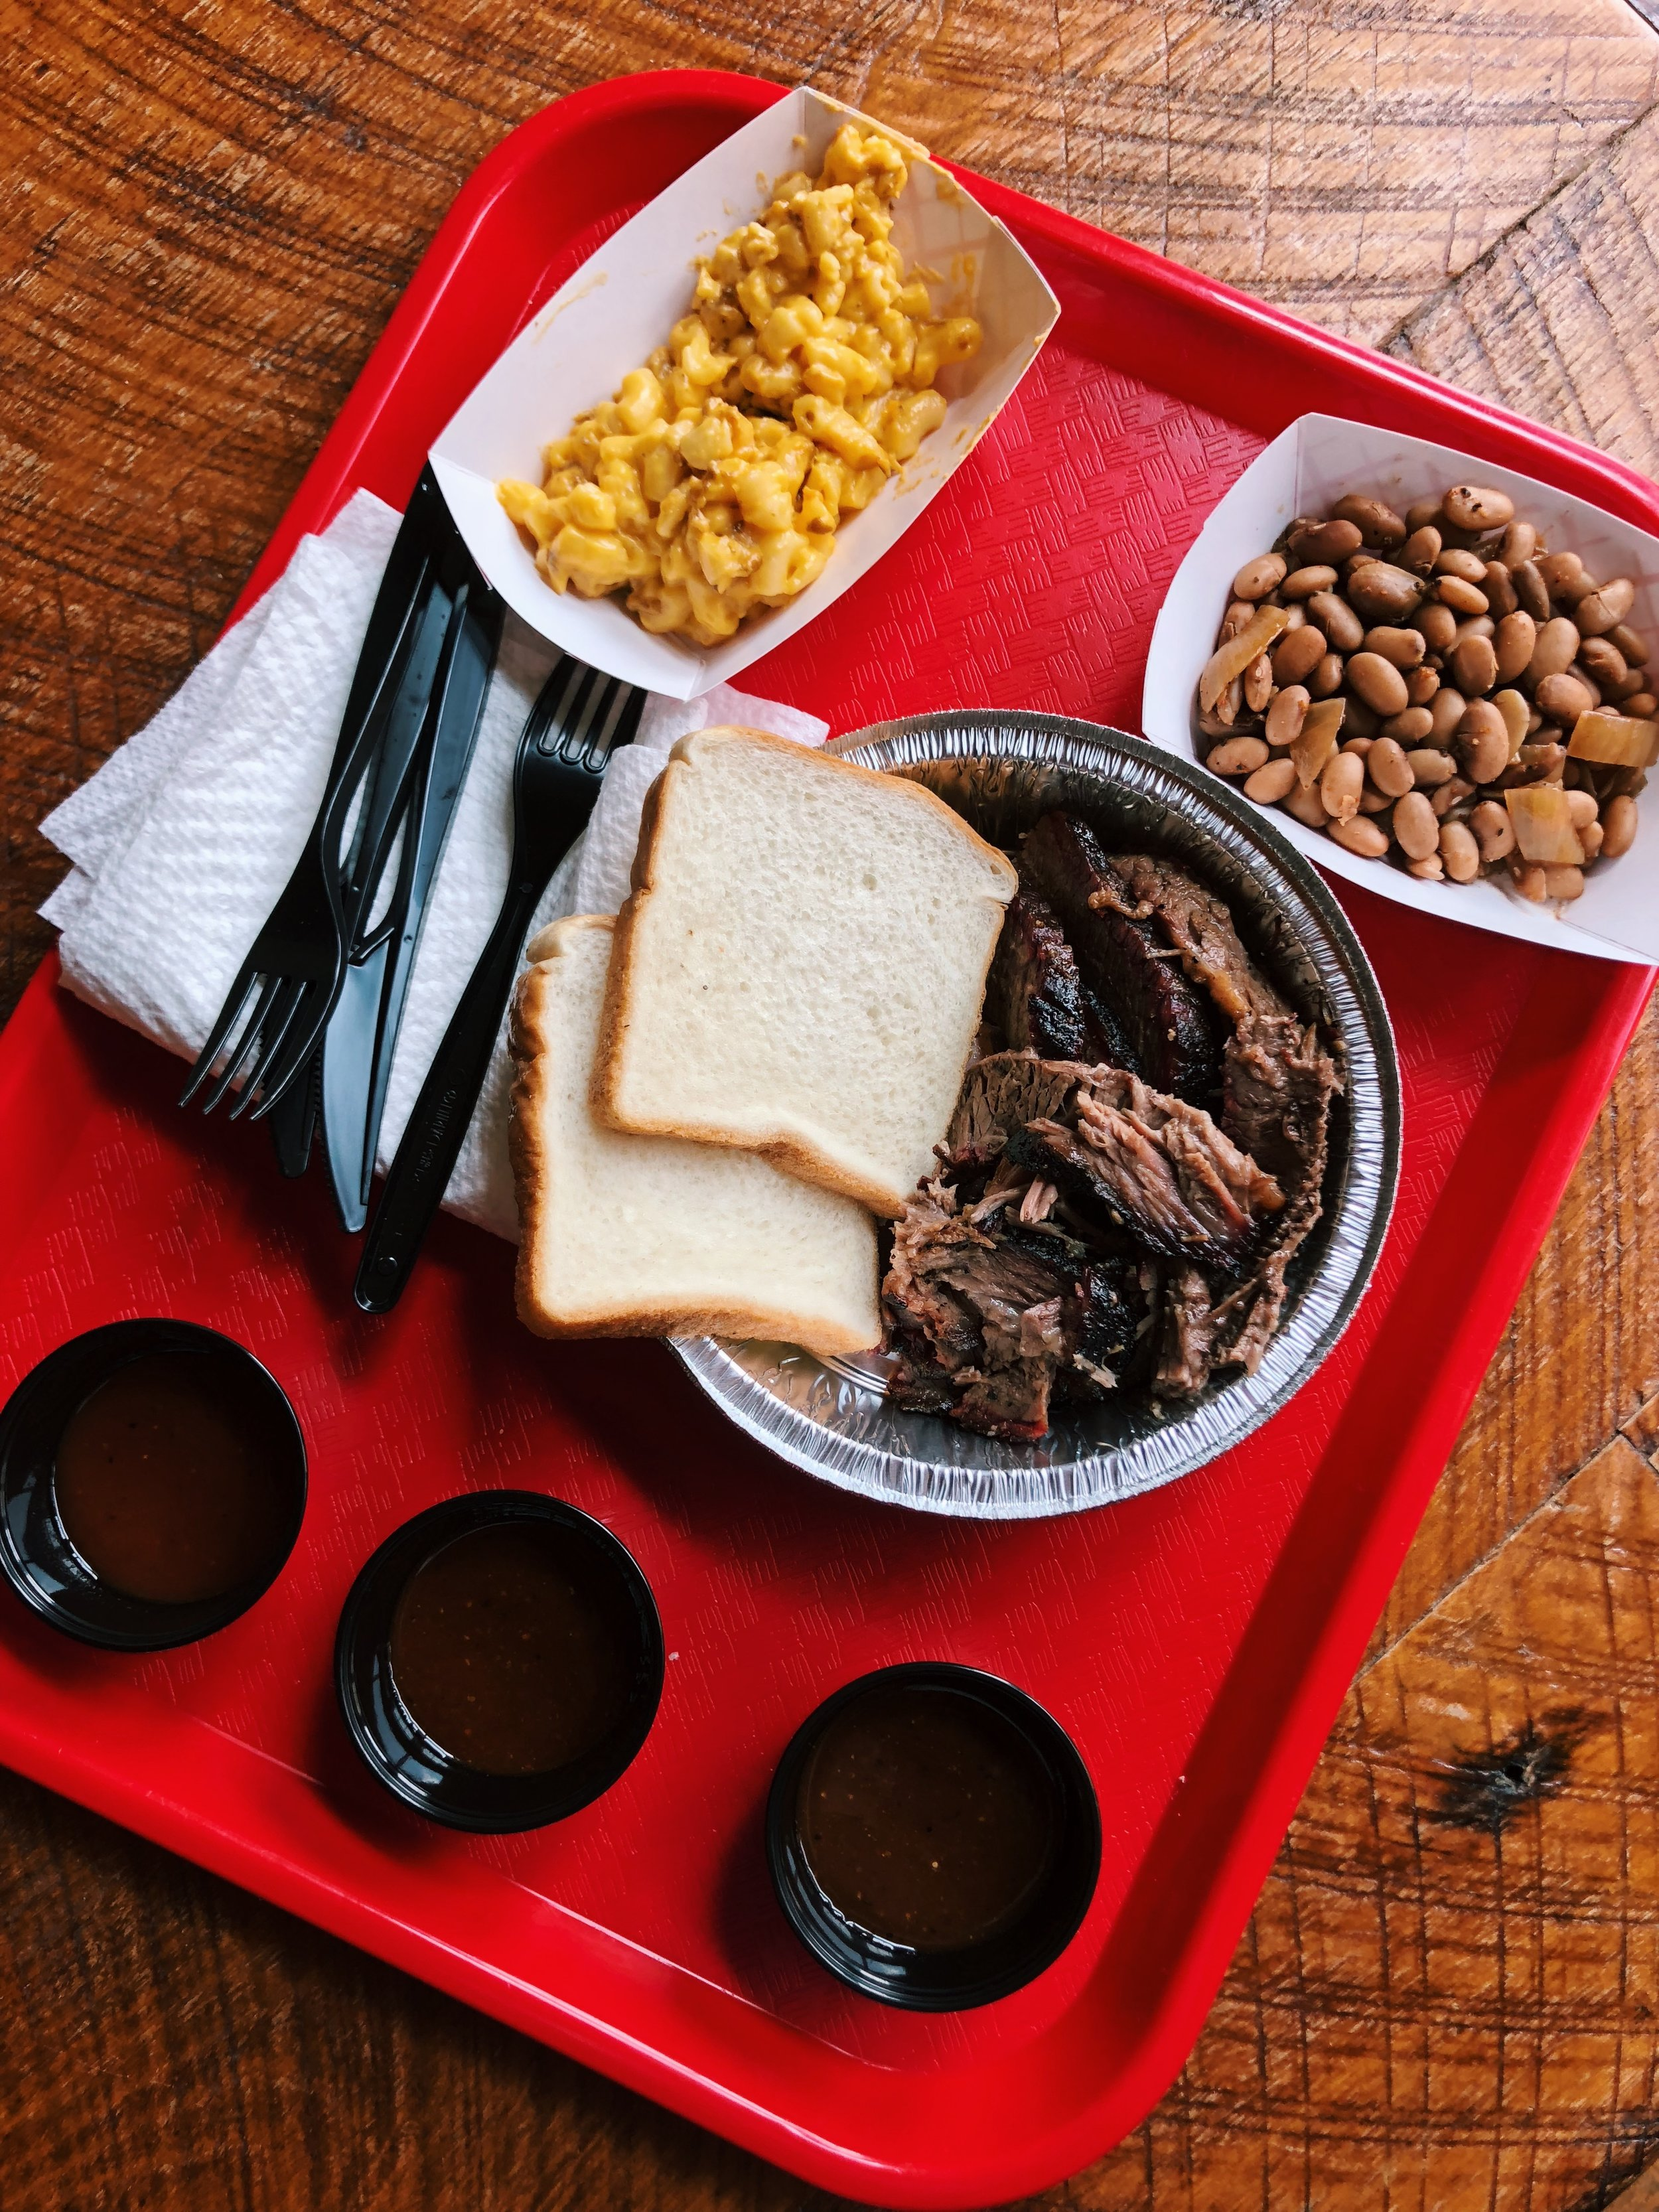 Brisket, beans, and mac & cheese from Backcountry BBQ